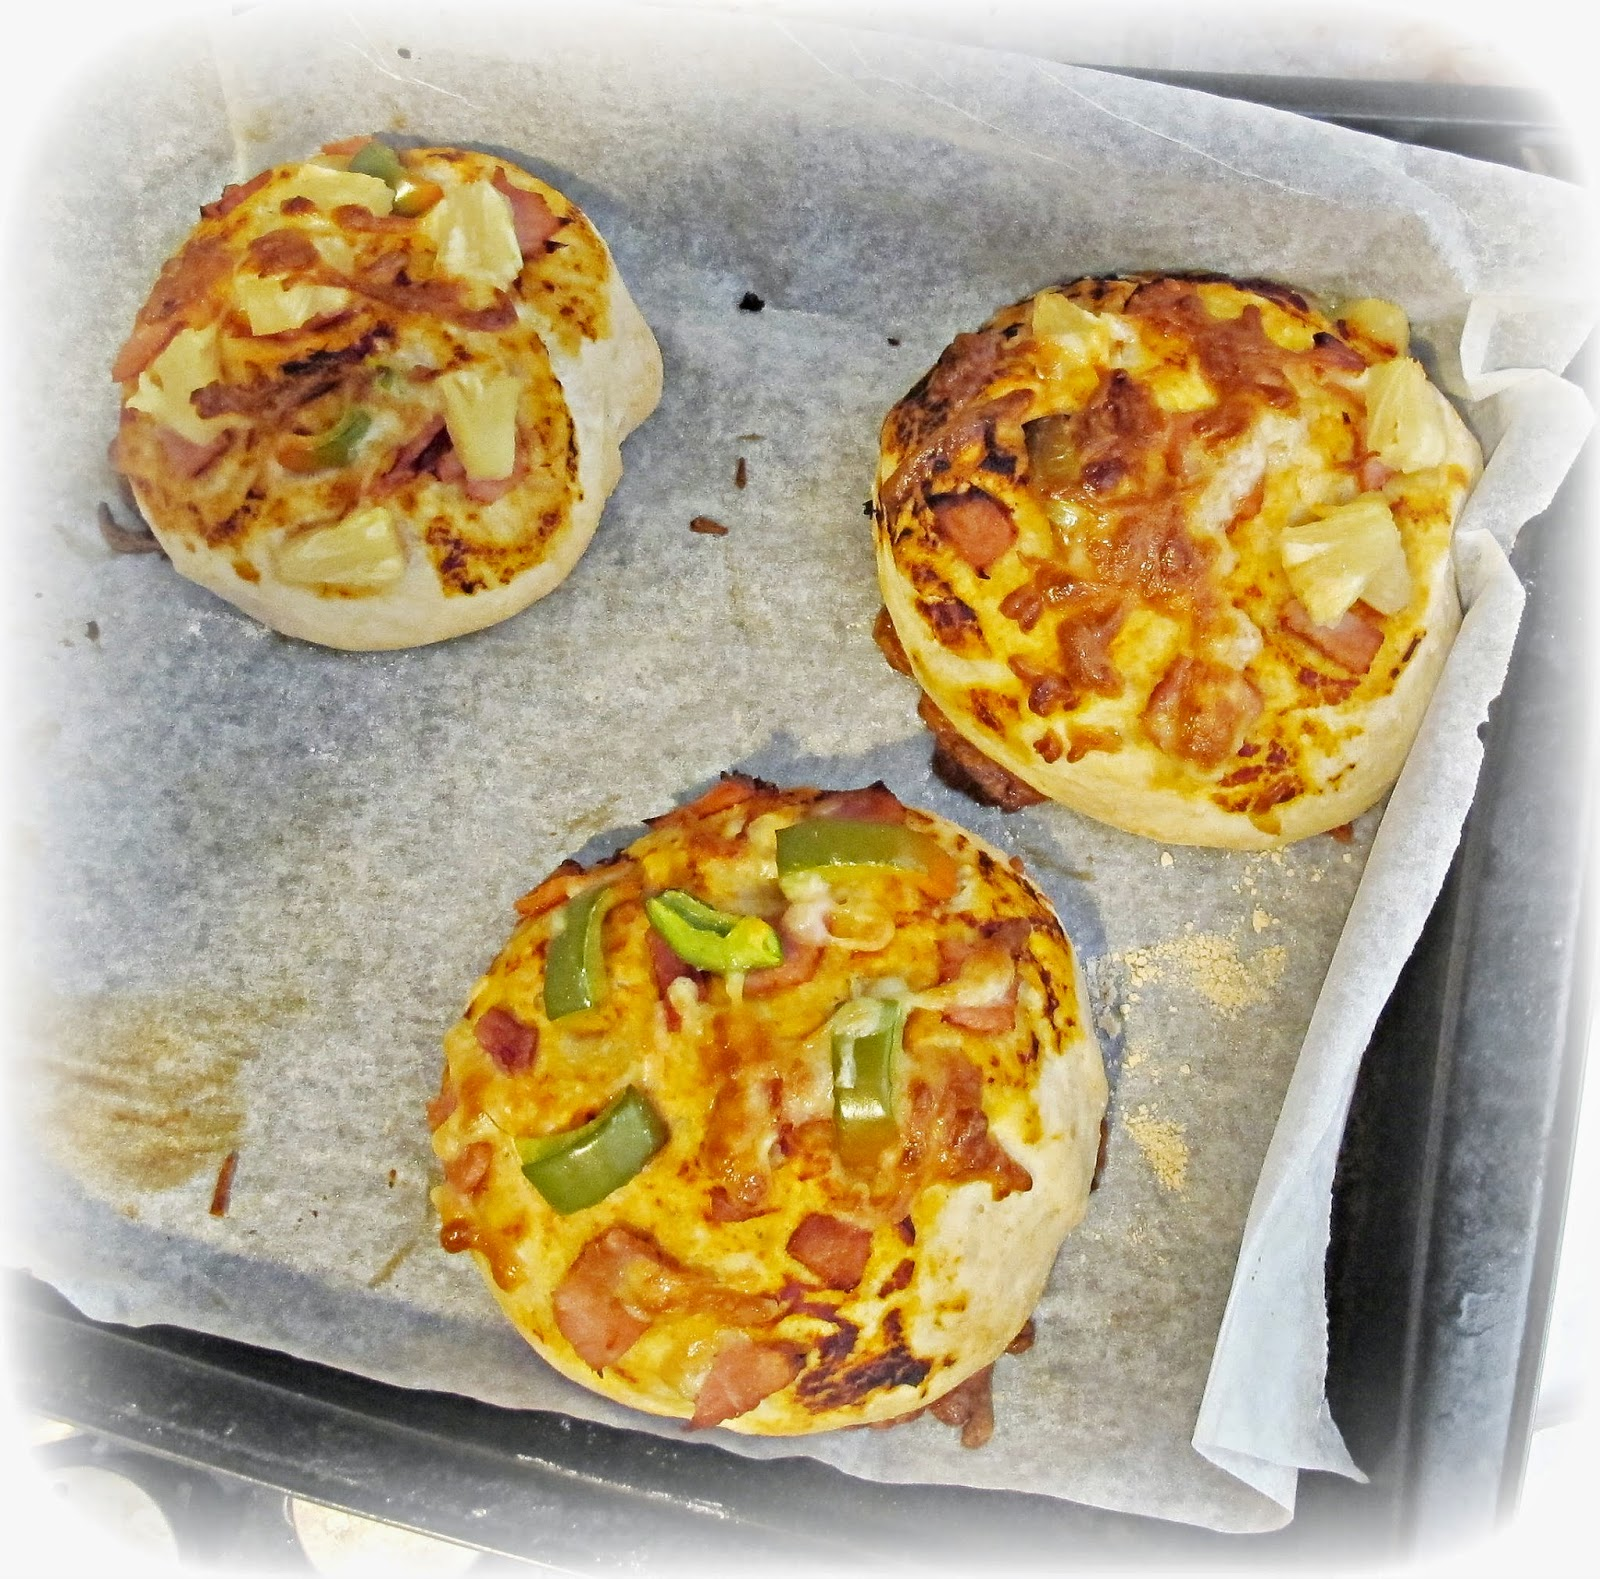 image pizza buns wholemeal capsicum bacon cheese pineapple tomato paste